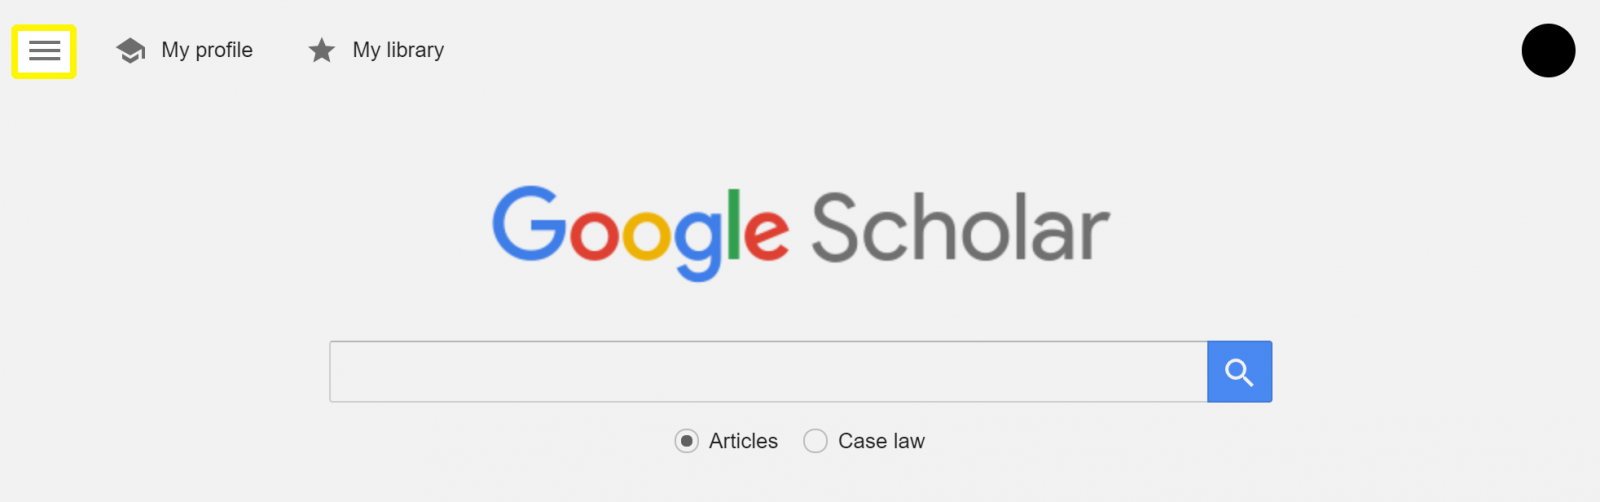 Screenshot of Google Scholar home page indicating menu icon